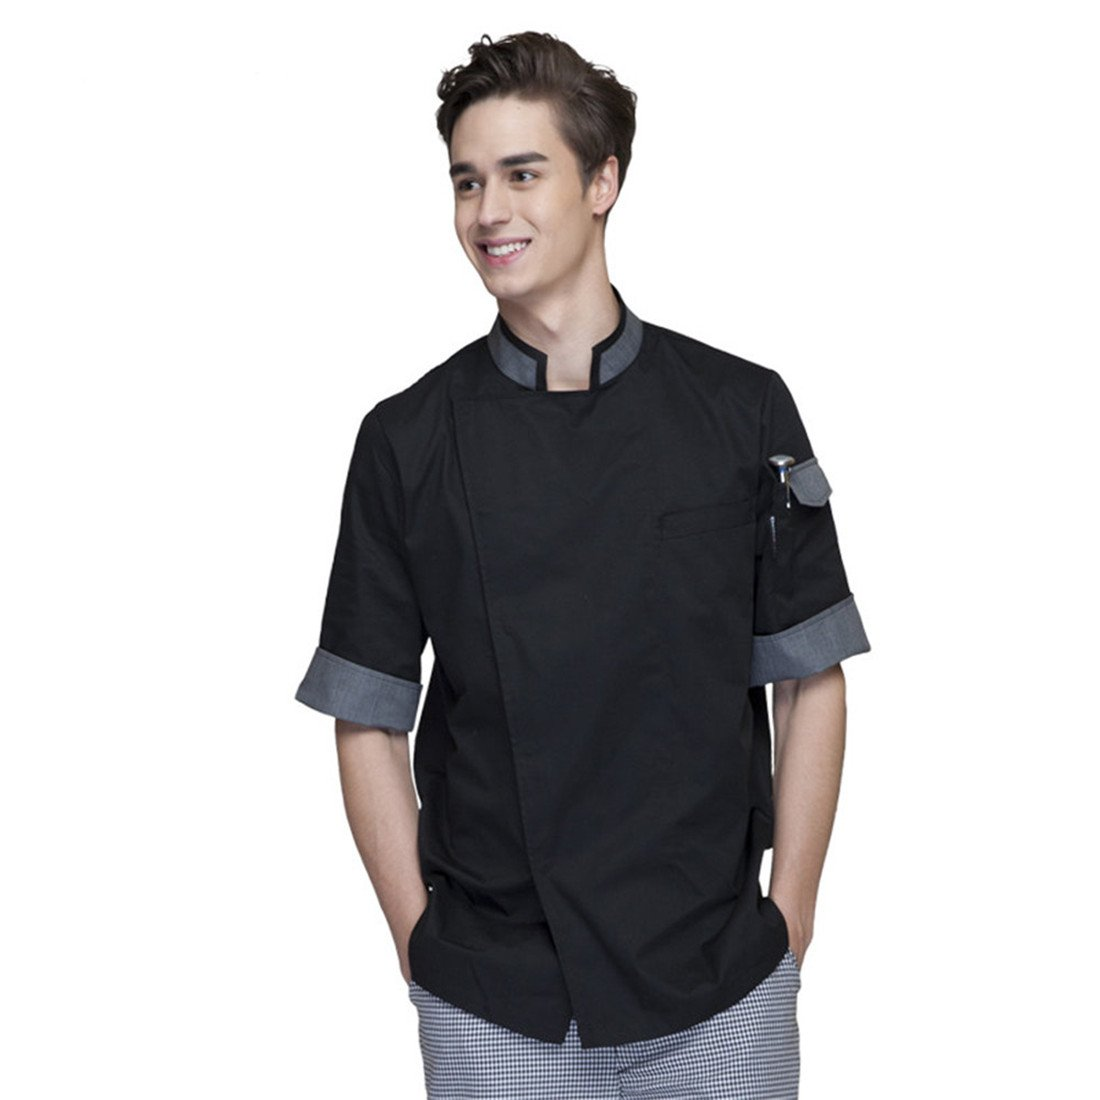 Cheflife Men's Black Unisex Chef Uniforms Short Sleeve Chef Coat US:M/Tag:XL by Cheflife